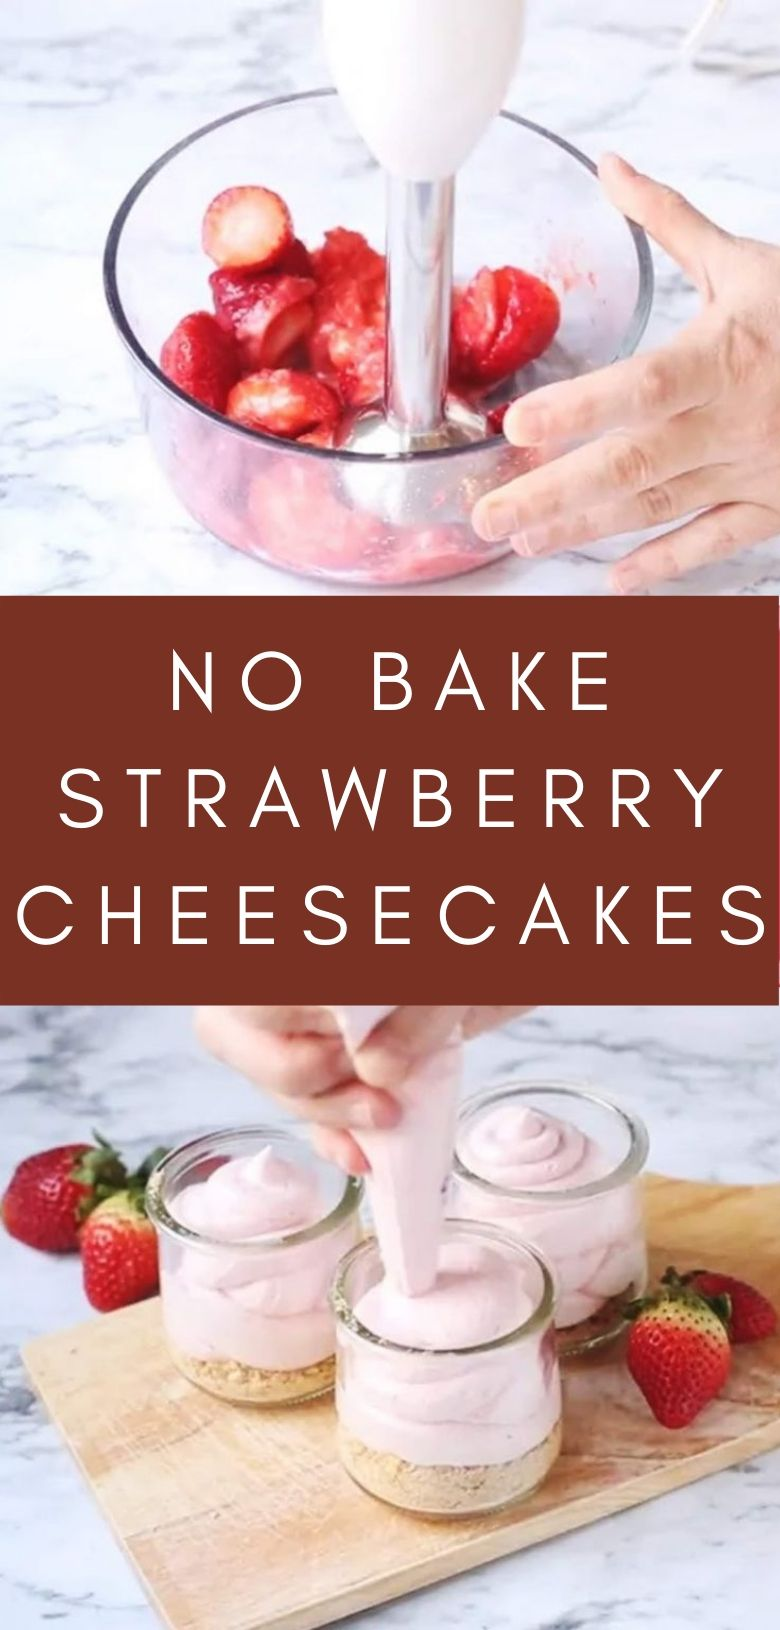 No Bake Strawberry Cheesecakes